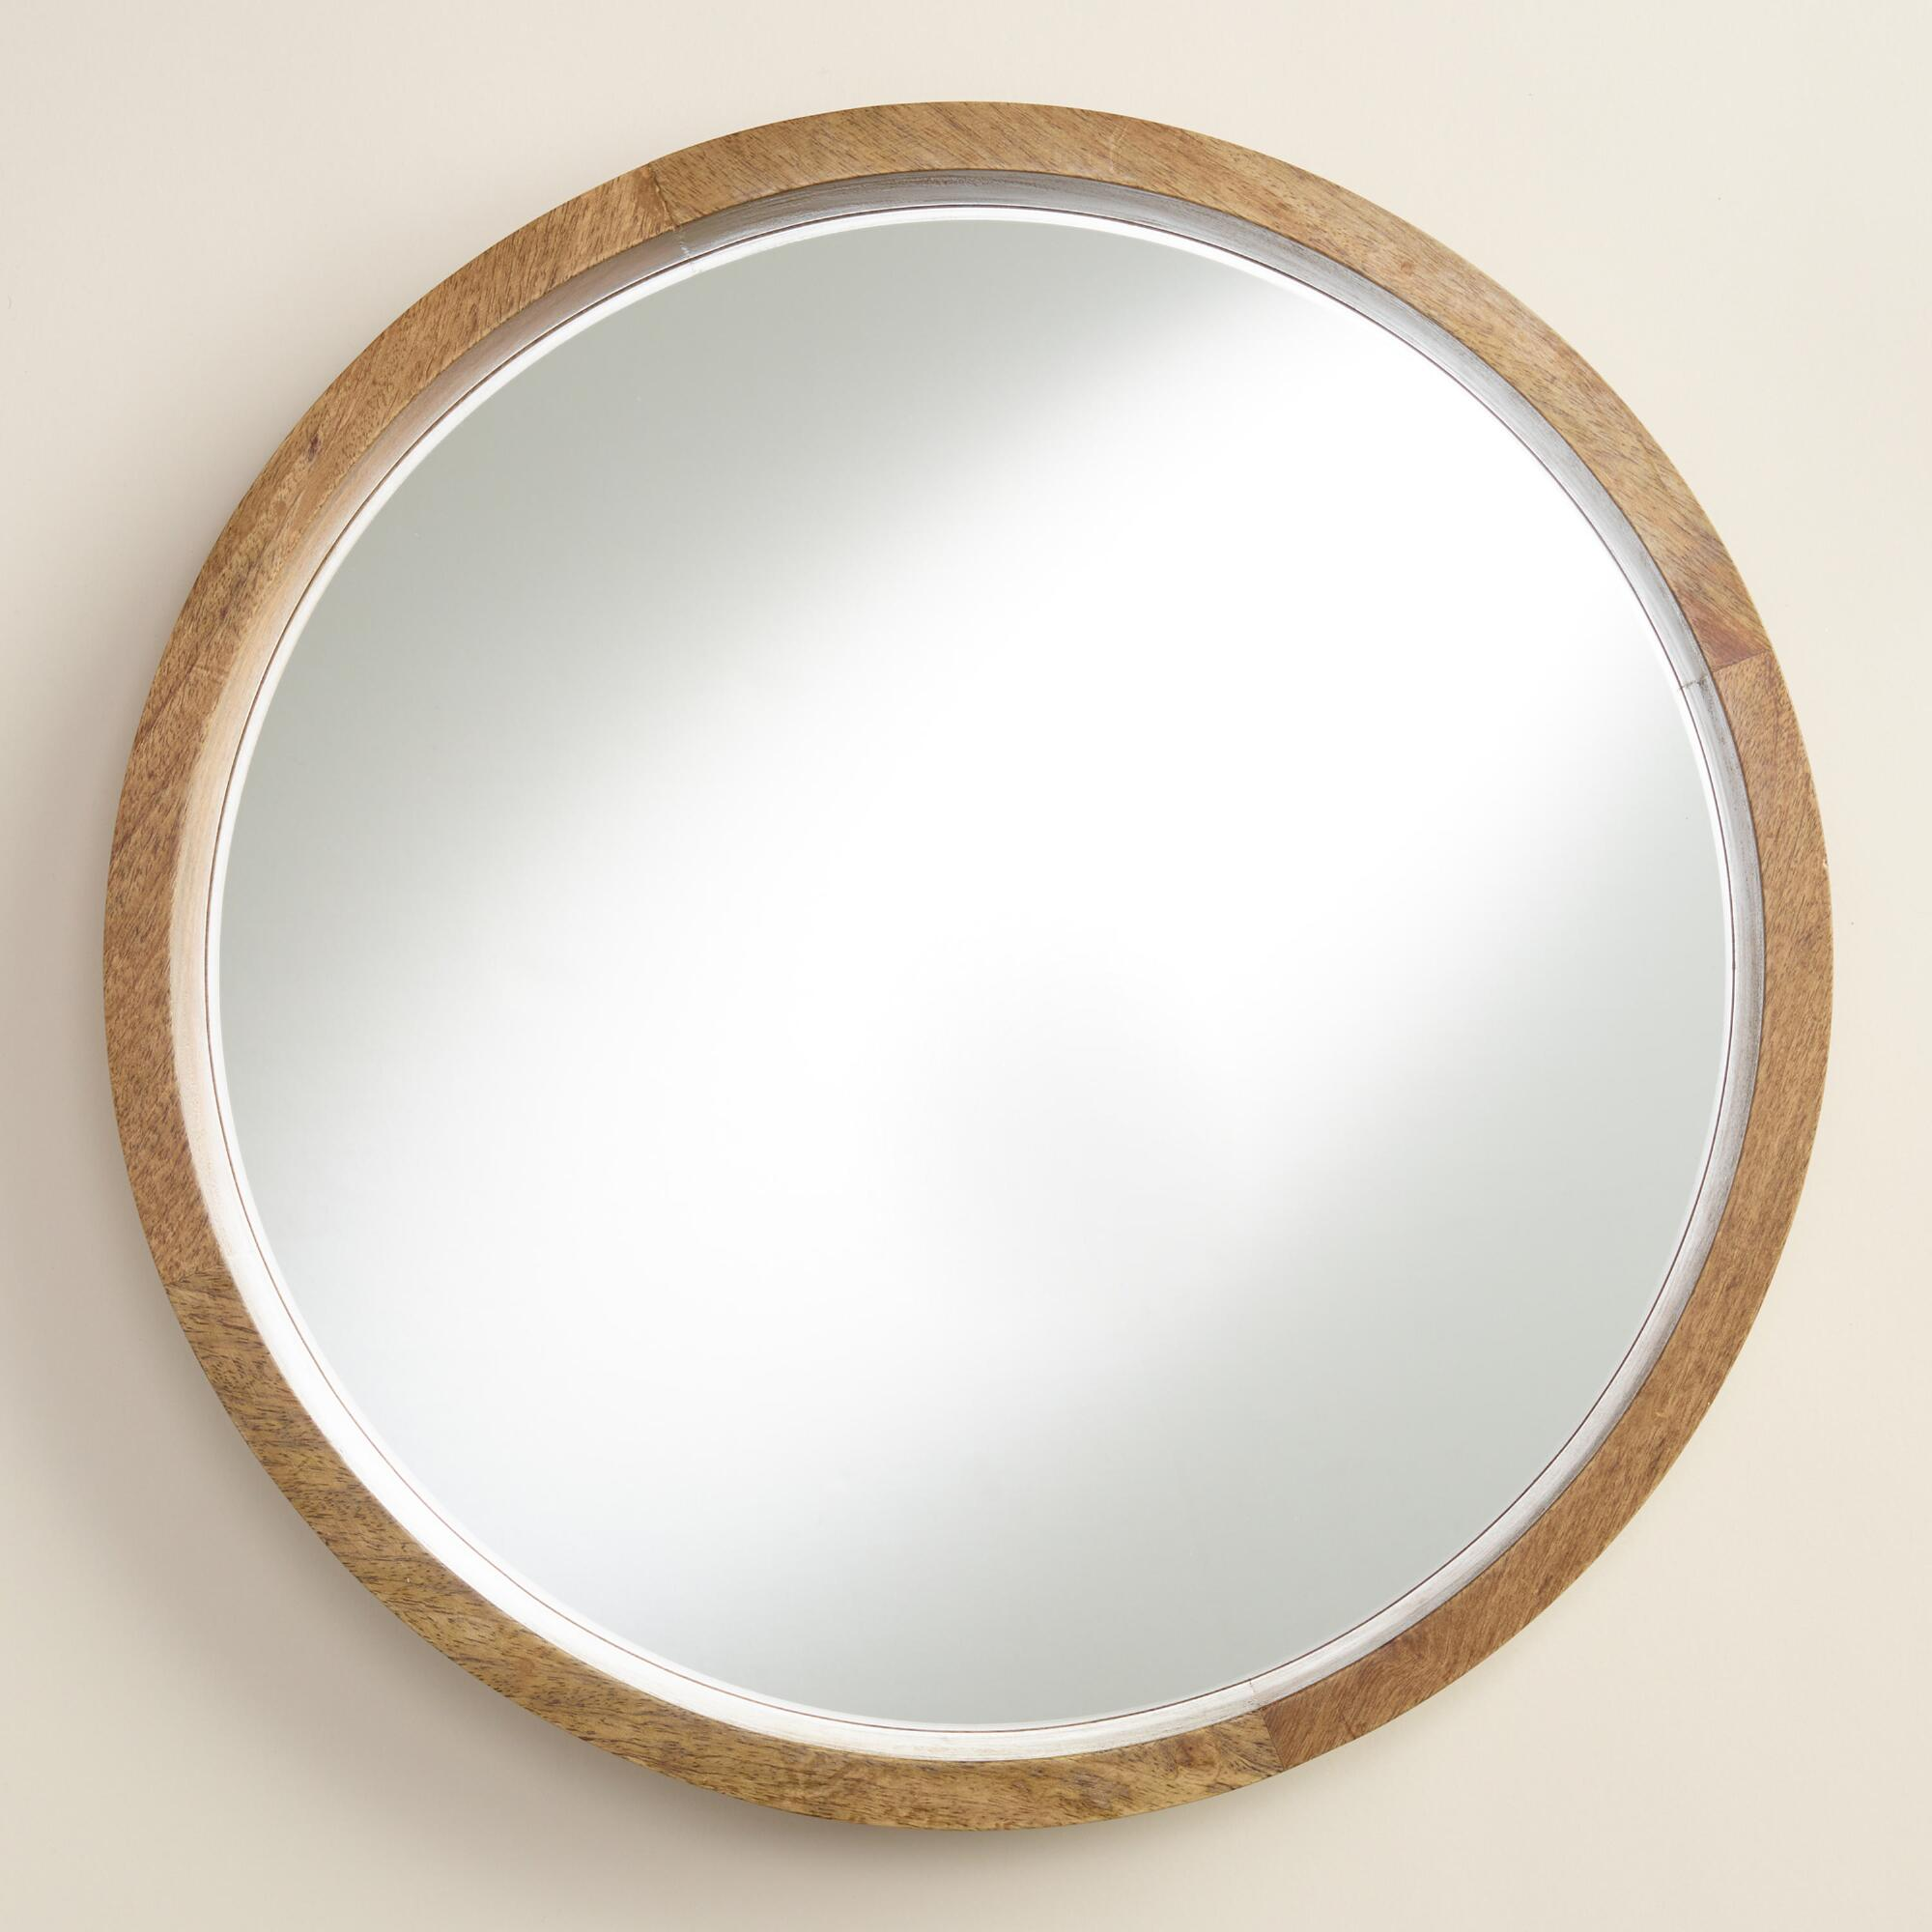 natural wood round evan mirror world market